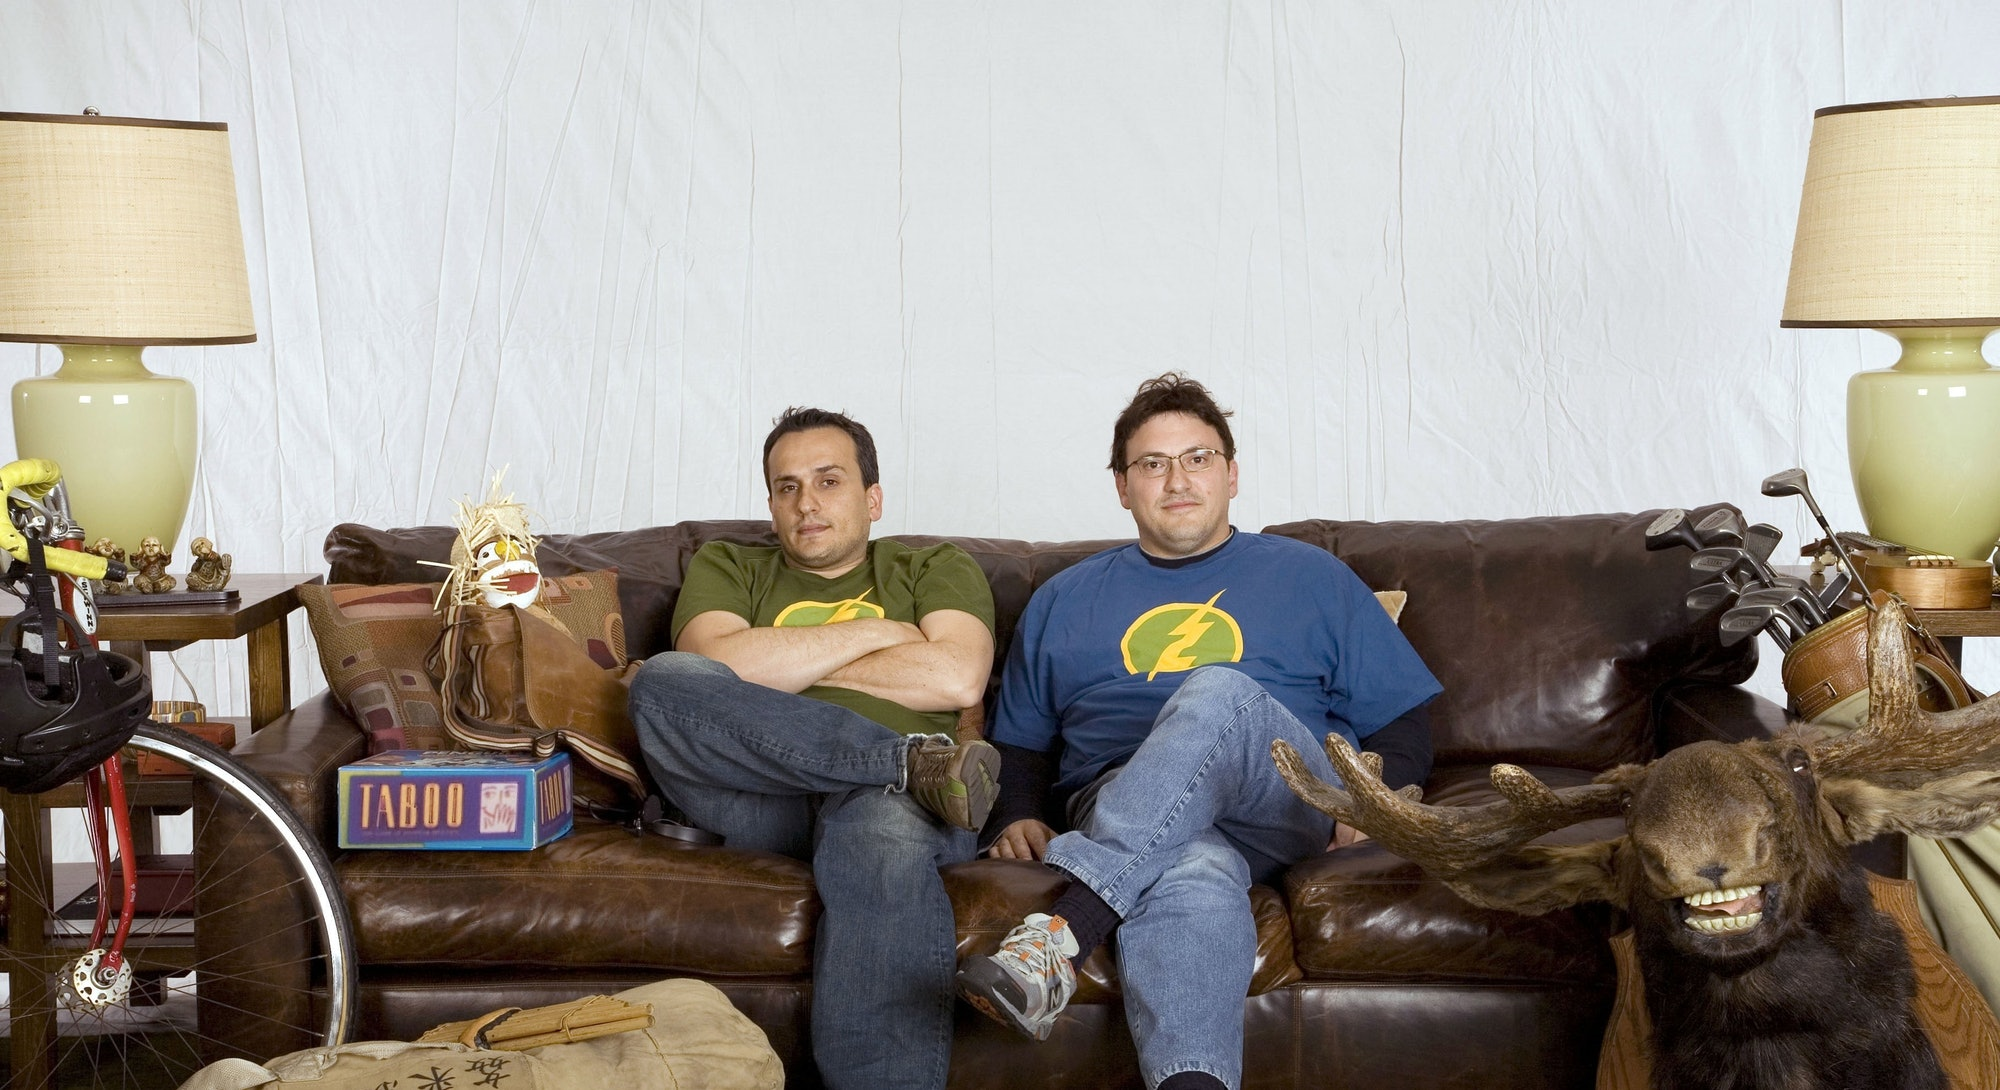 Russo Brothers on a couch